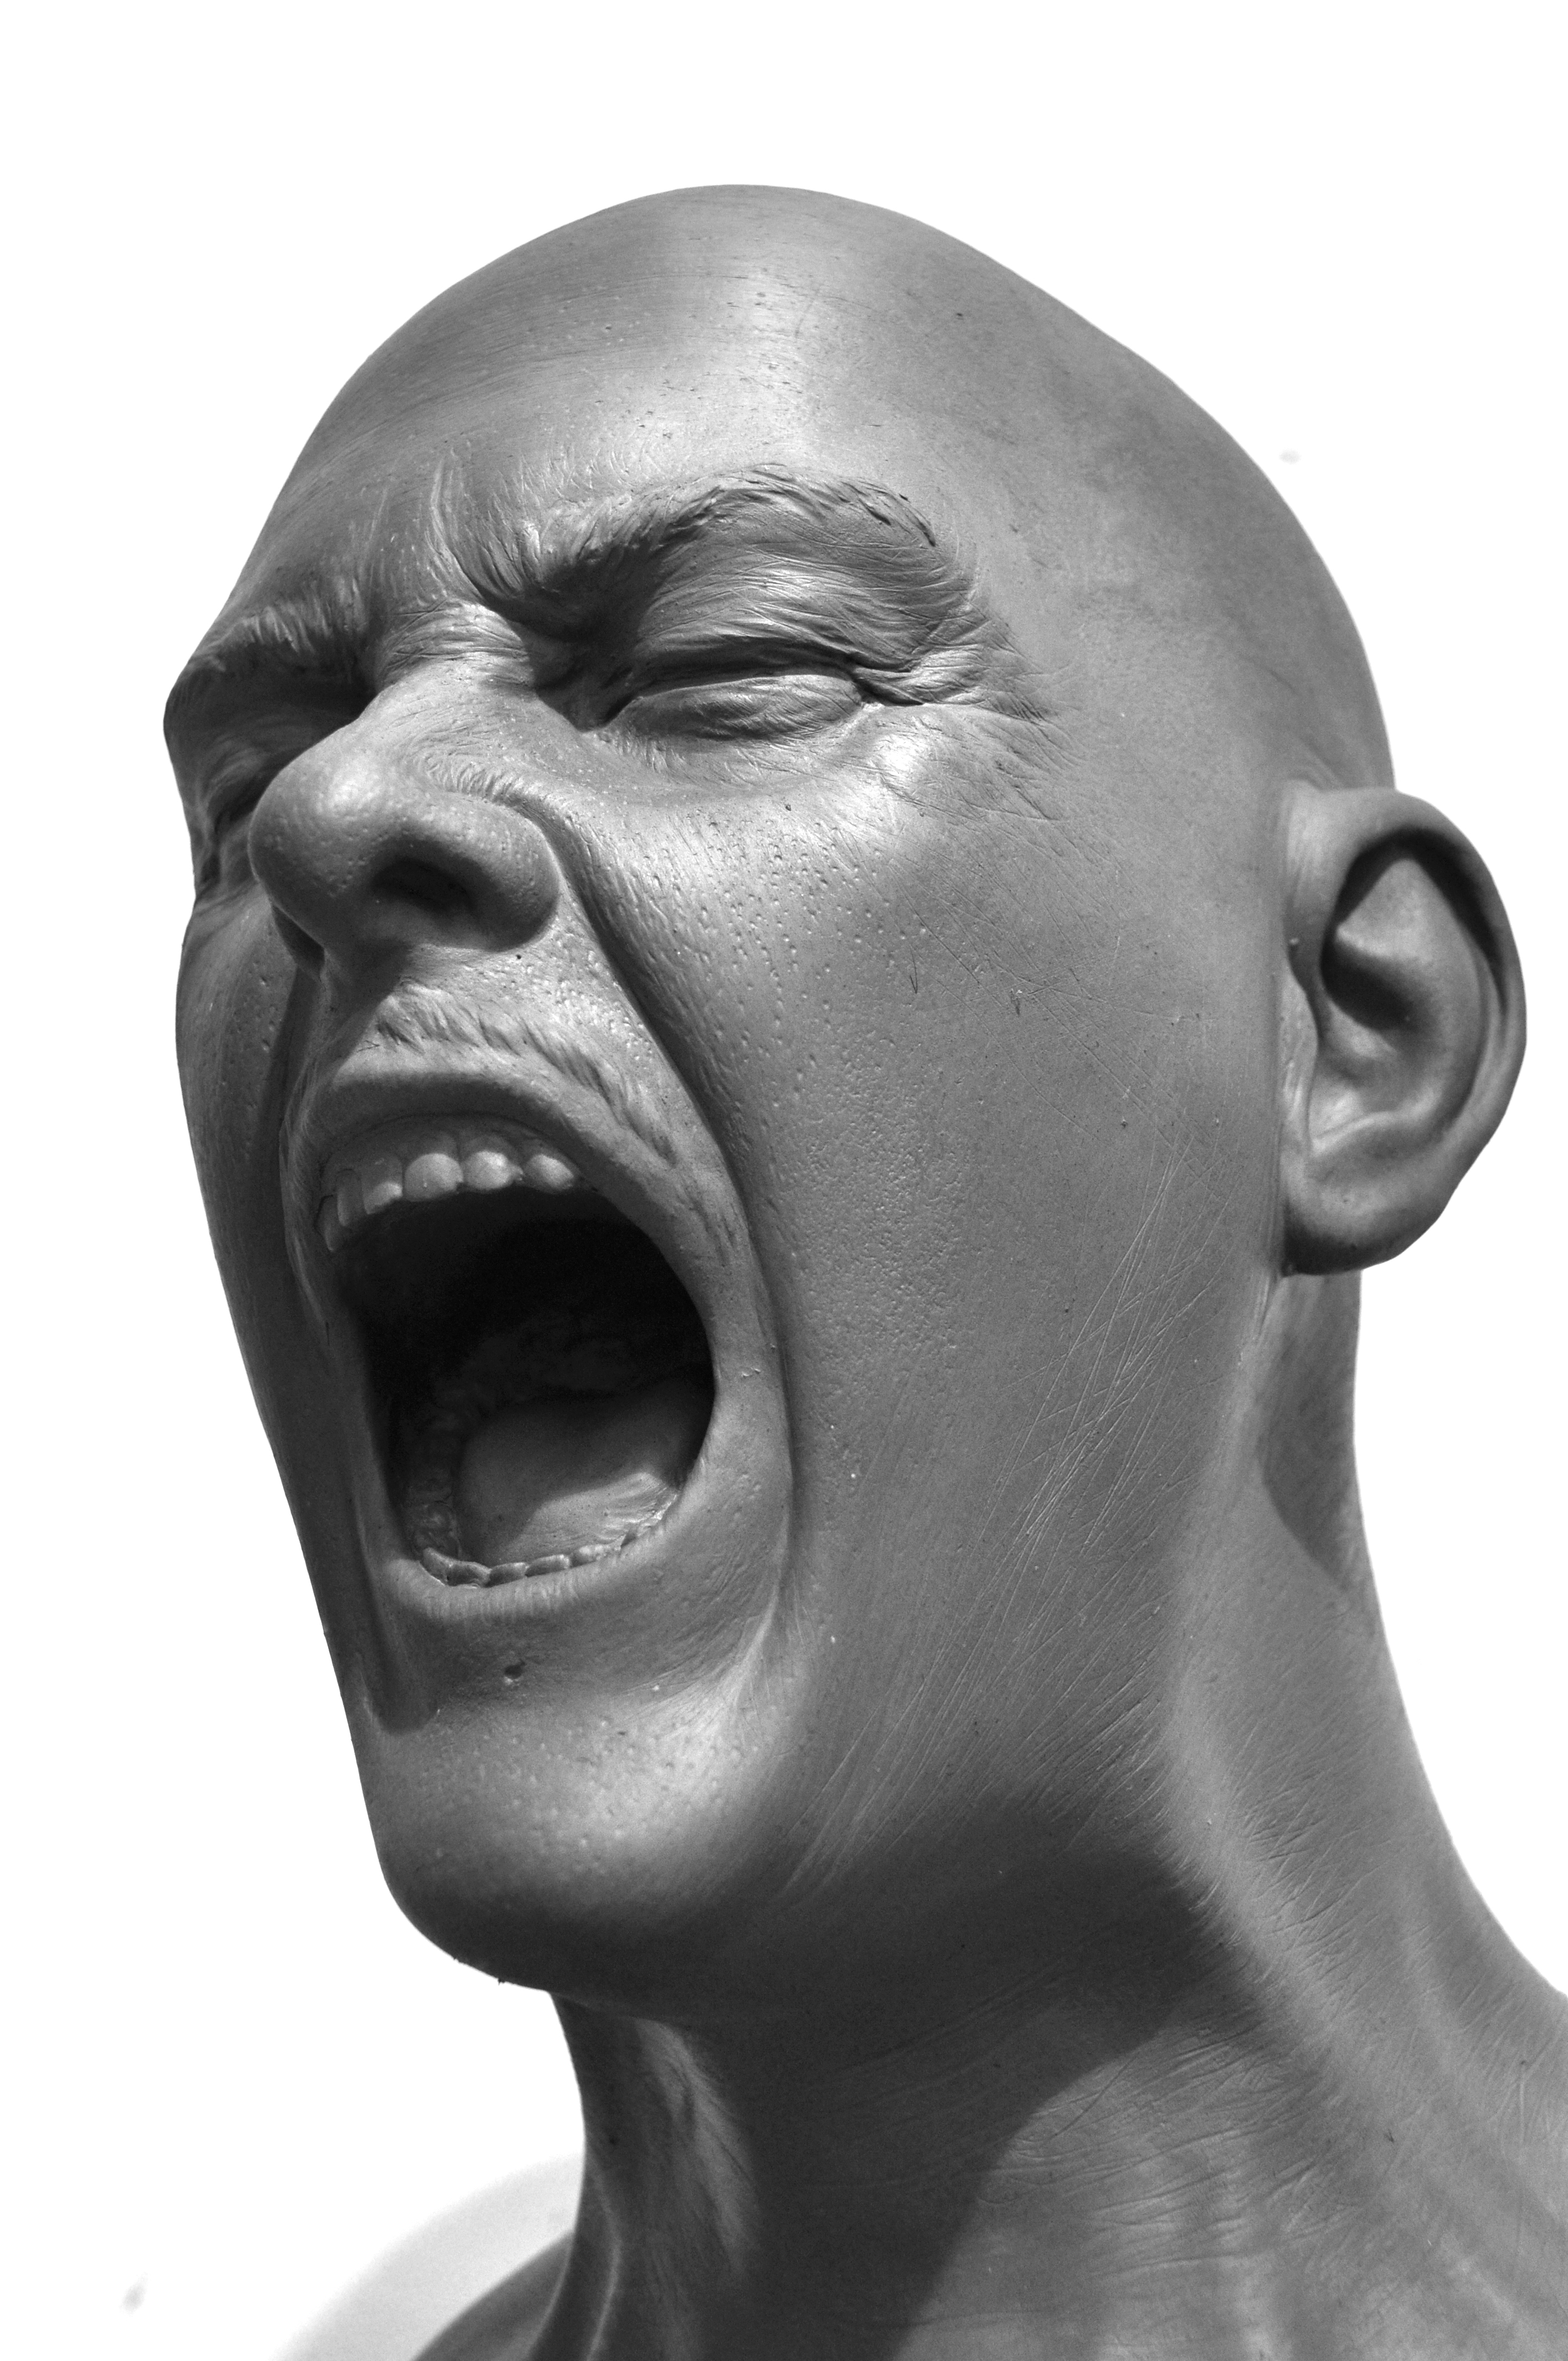 angry screaming face - photo #17